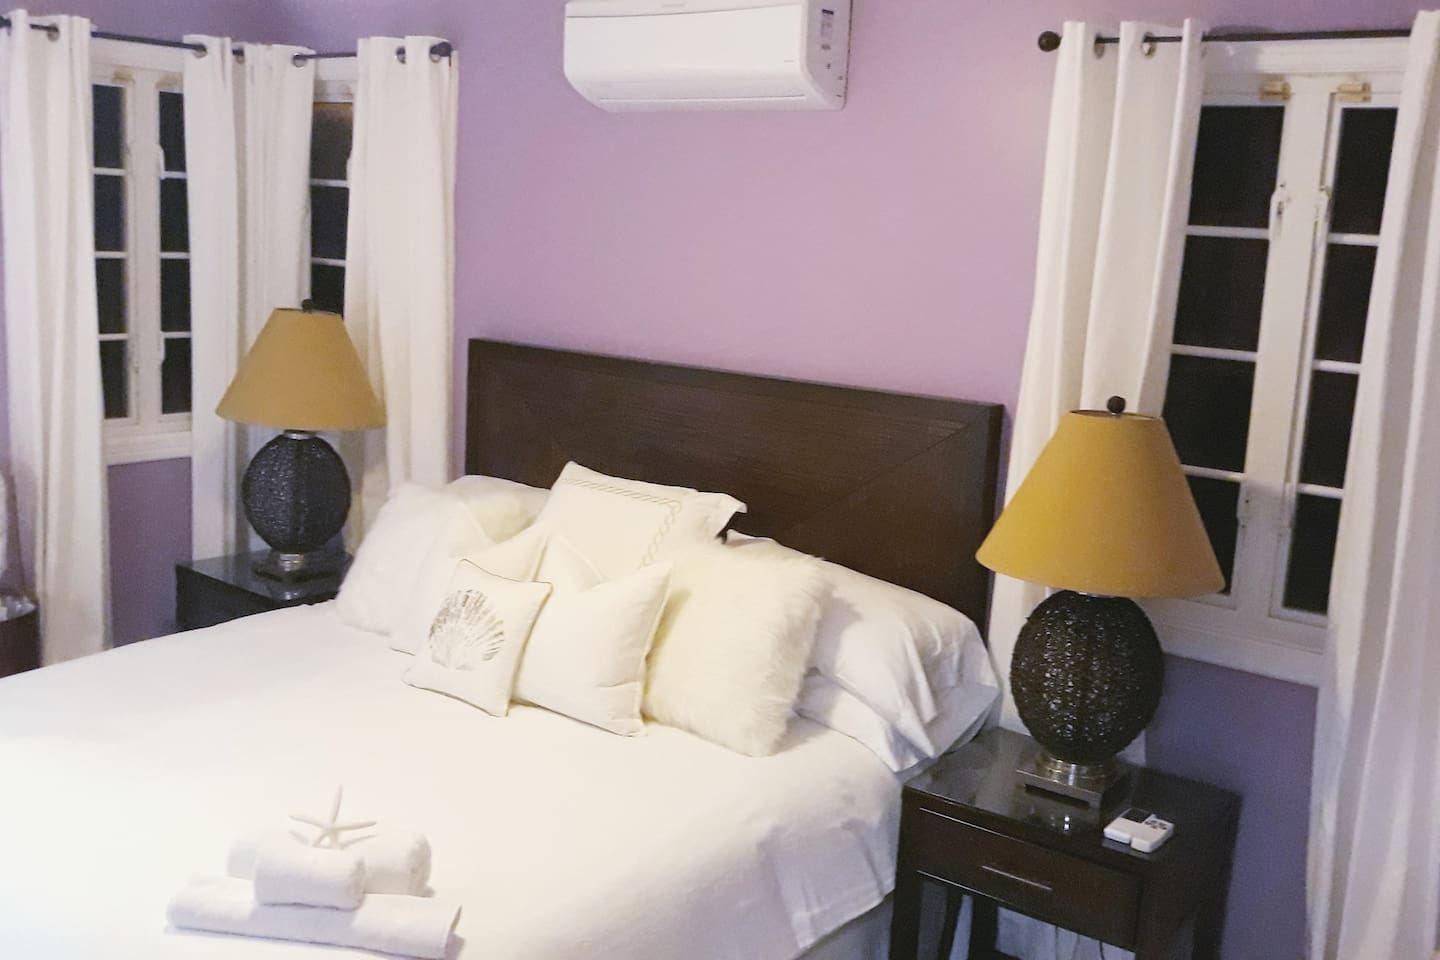 Private Room equipped with King Sized bed, Sitting Area, ceiling fan, A/c unit, Fridge, large walkin closet and private        ensuite bathroom.